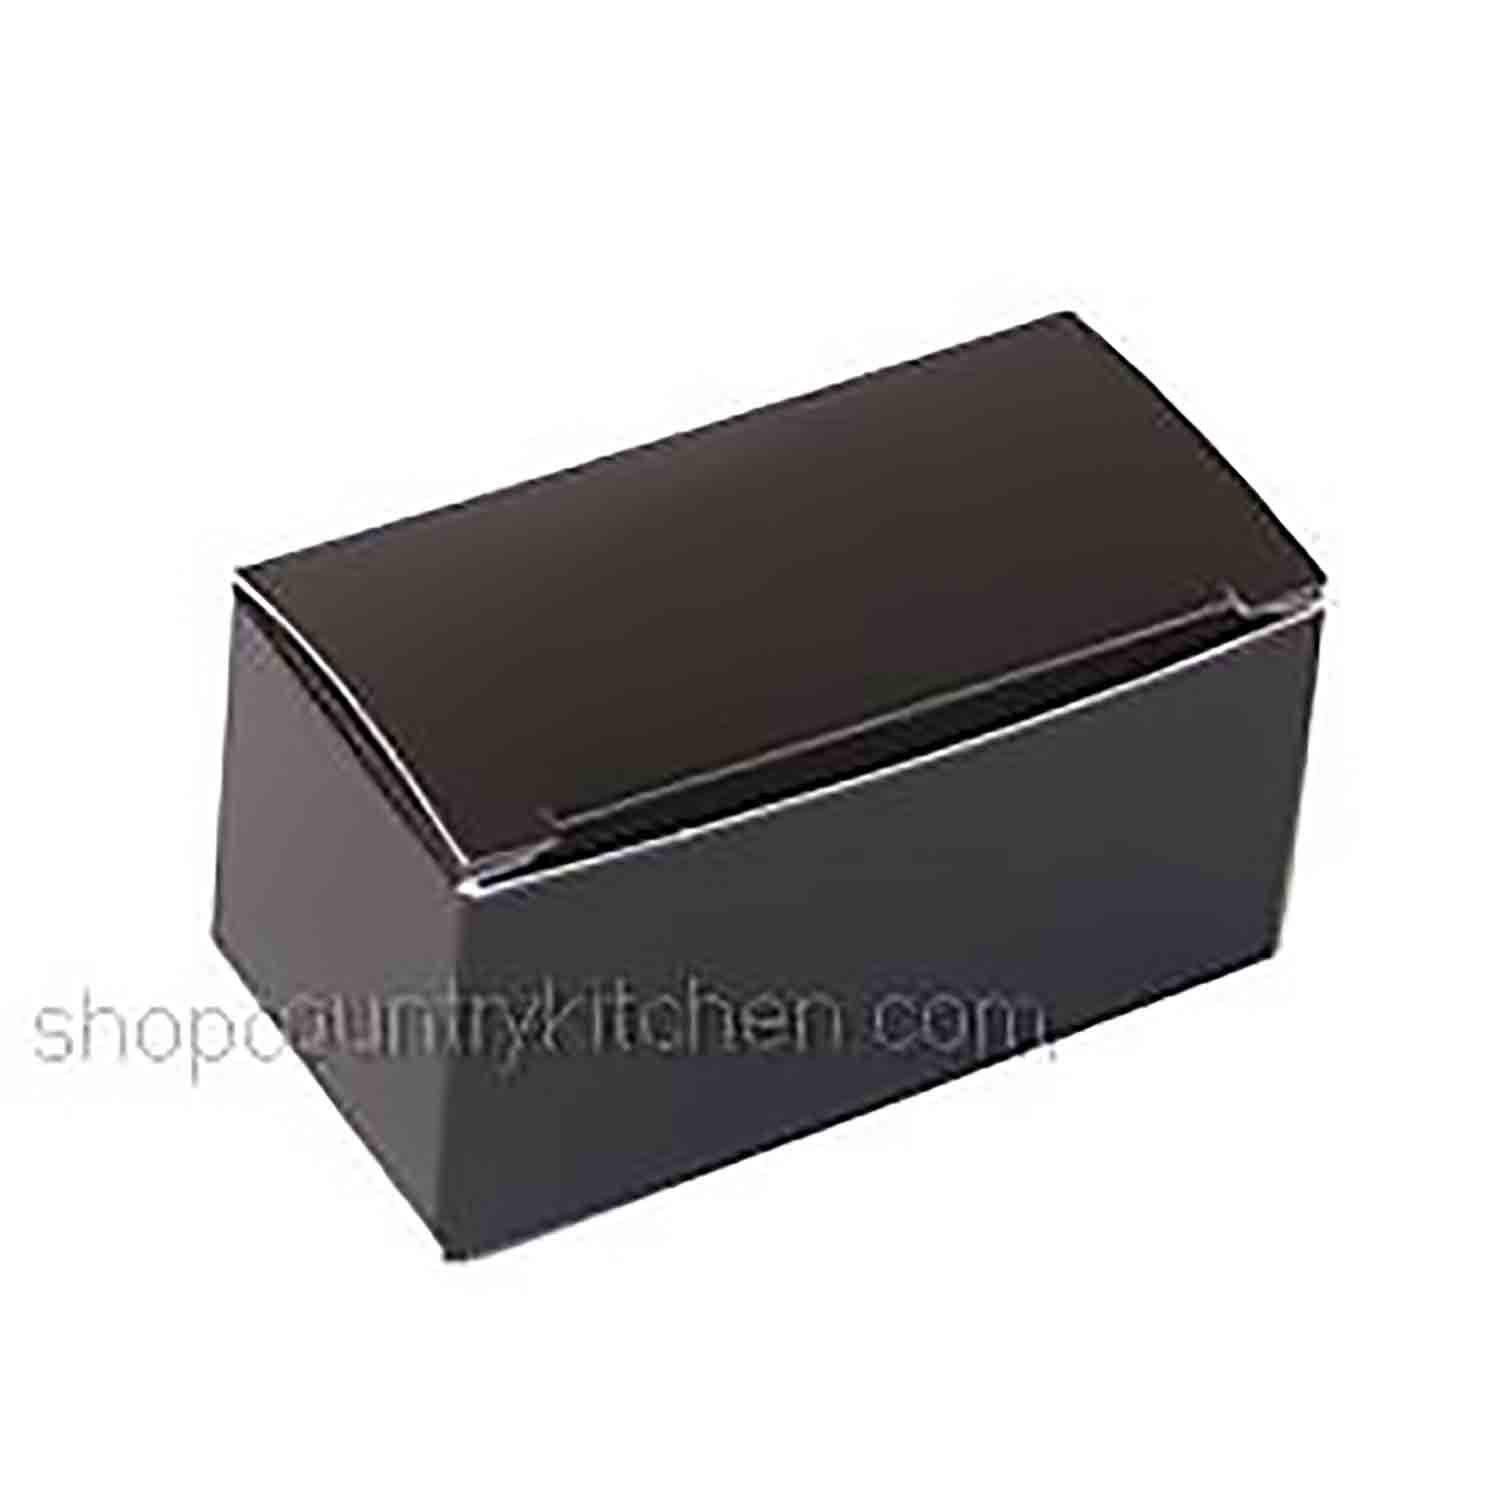 2 pc. Black Candy Box